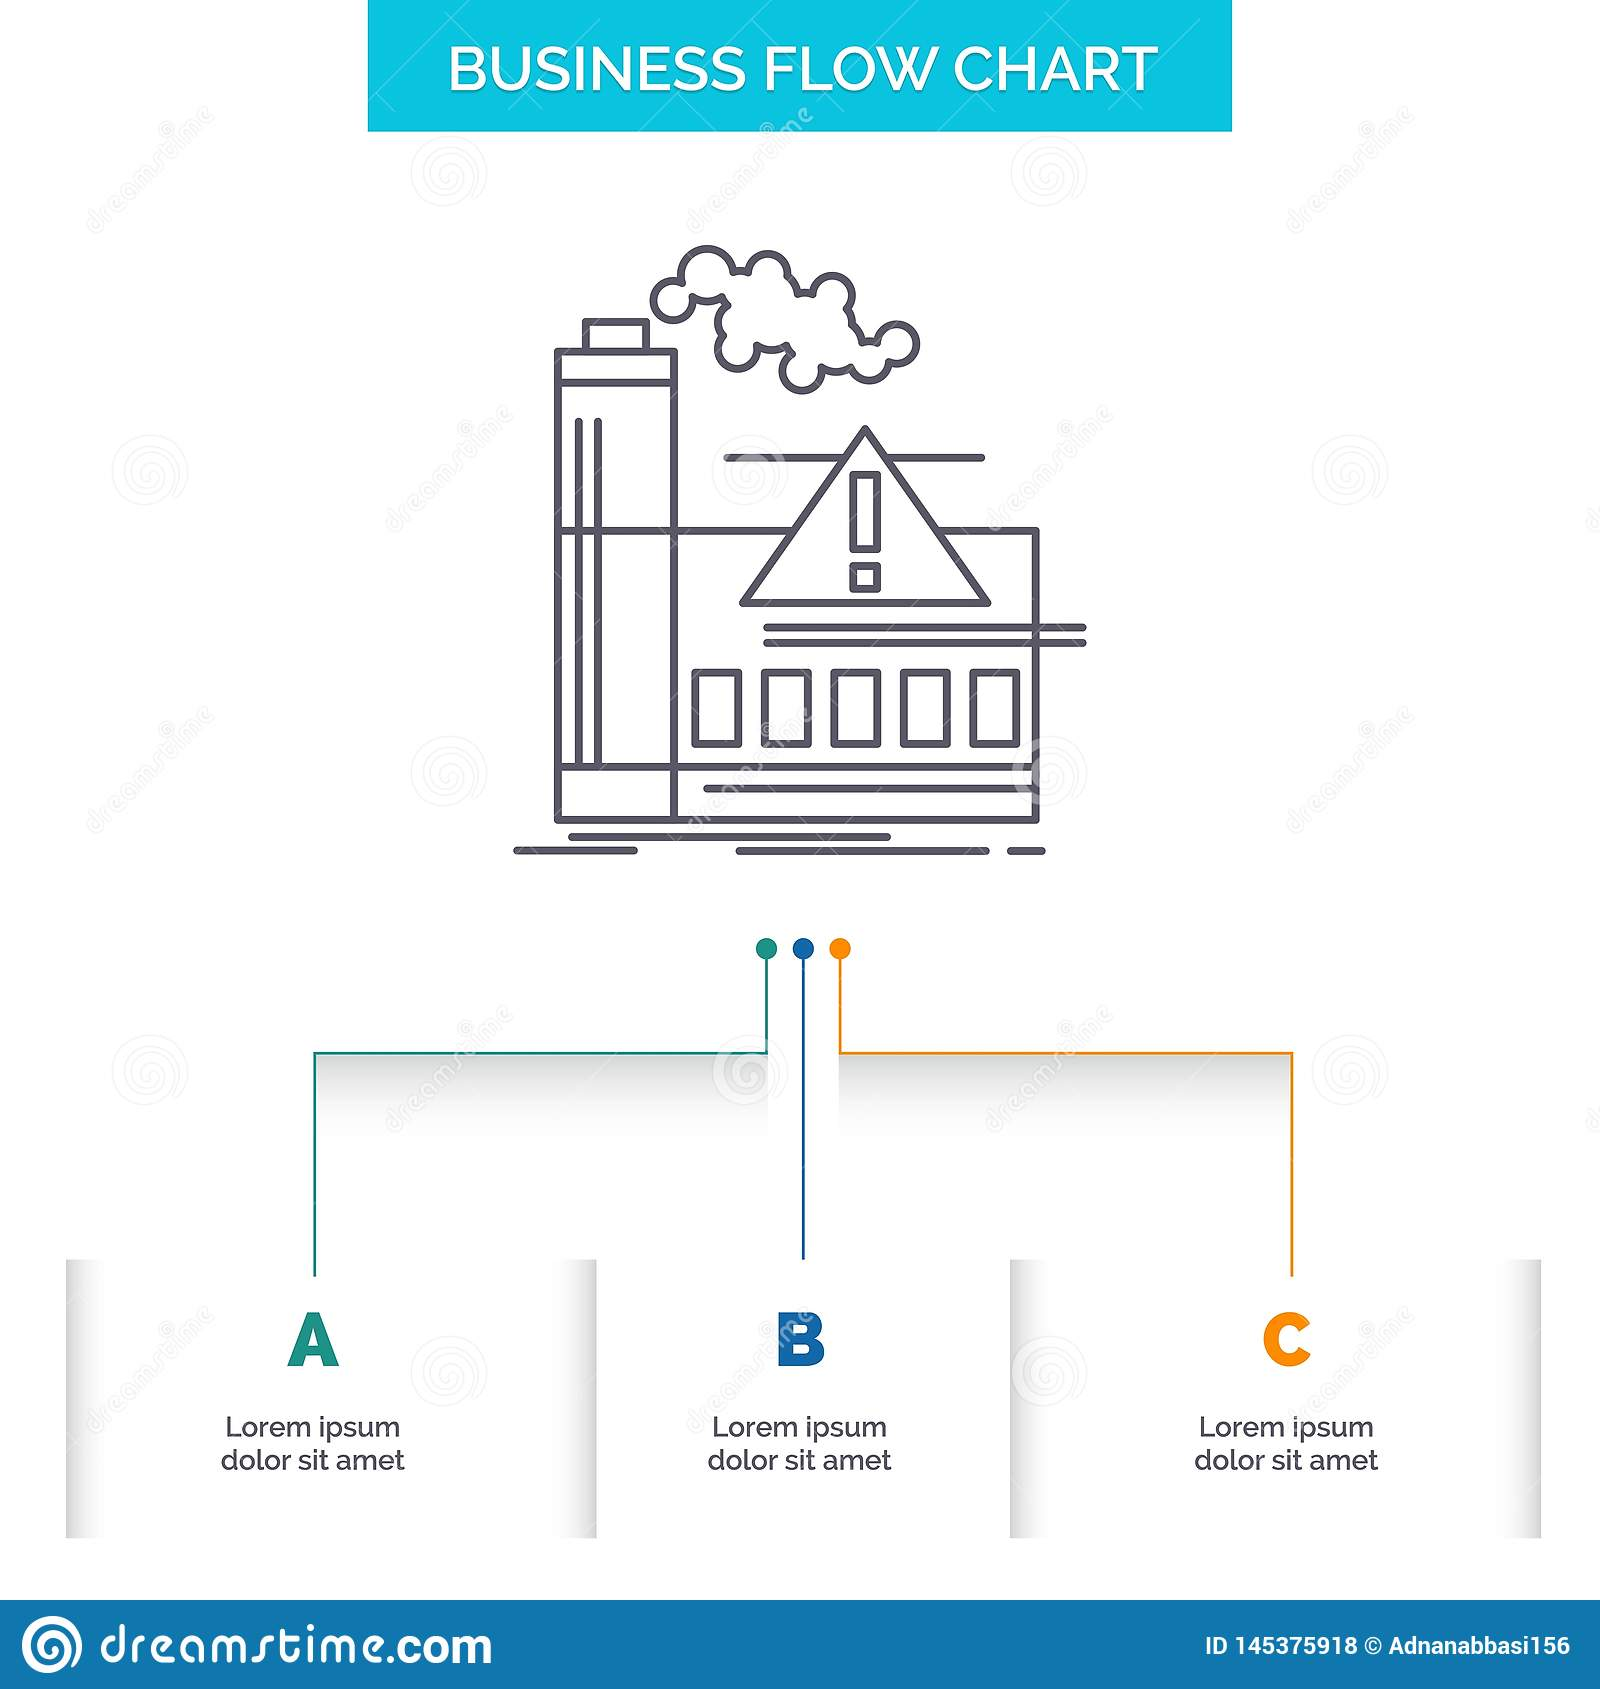 pollution, factory, air, alert, industry business flow chart design with 3  steps  line icon for presentation background template place for text